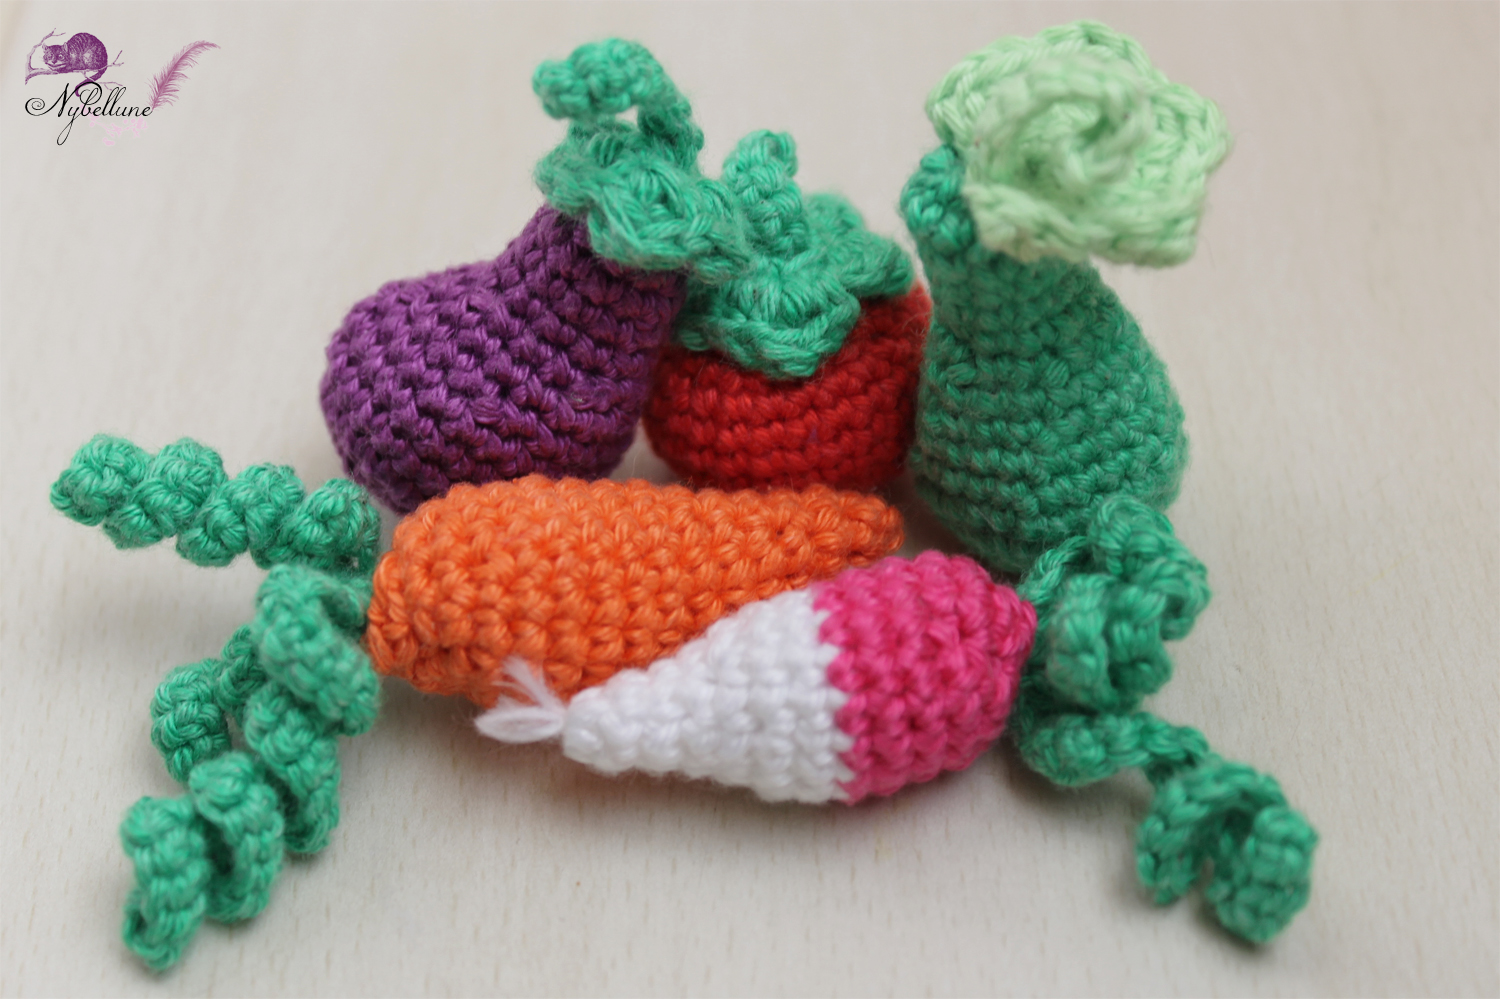 Amigurumi Fruits Et Legumes : LImaginarium de Nybellune: Session amigurumis 4 - Fruits ...